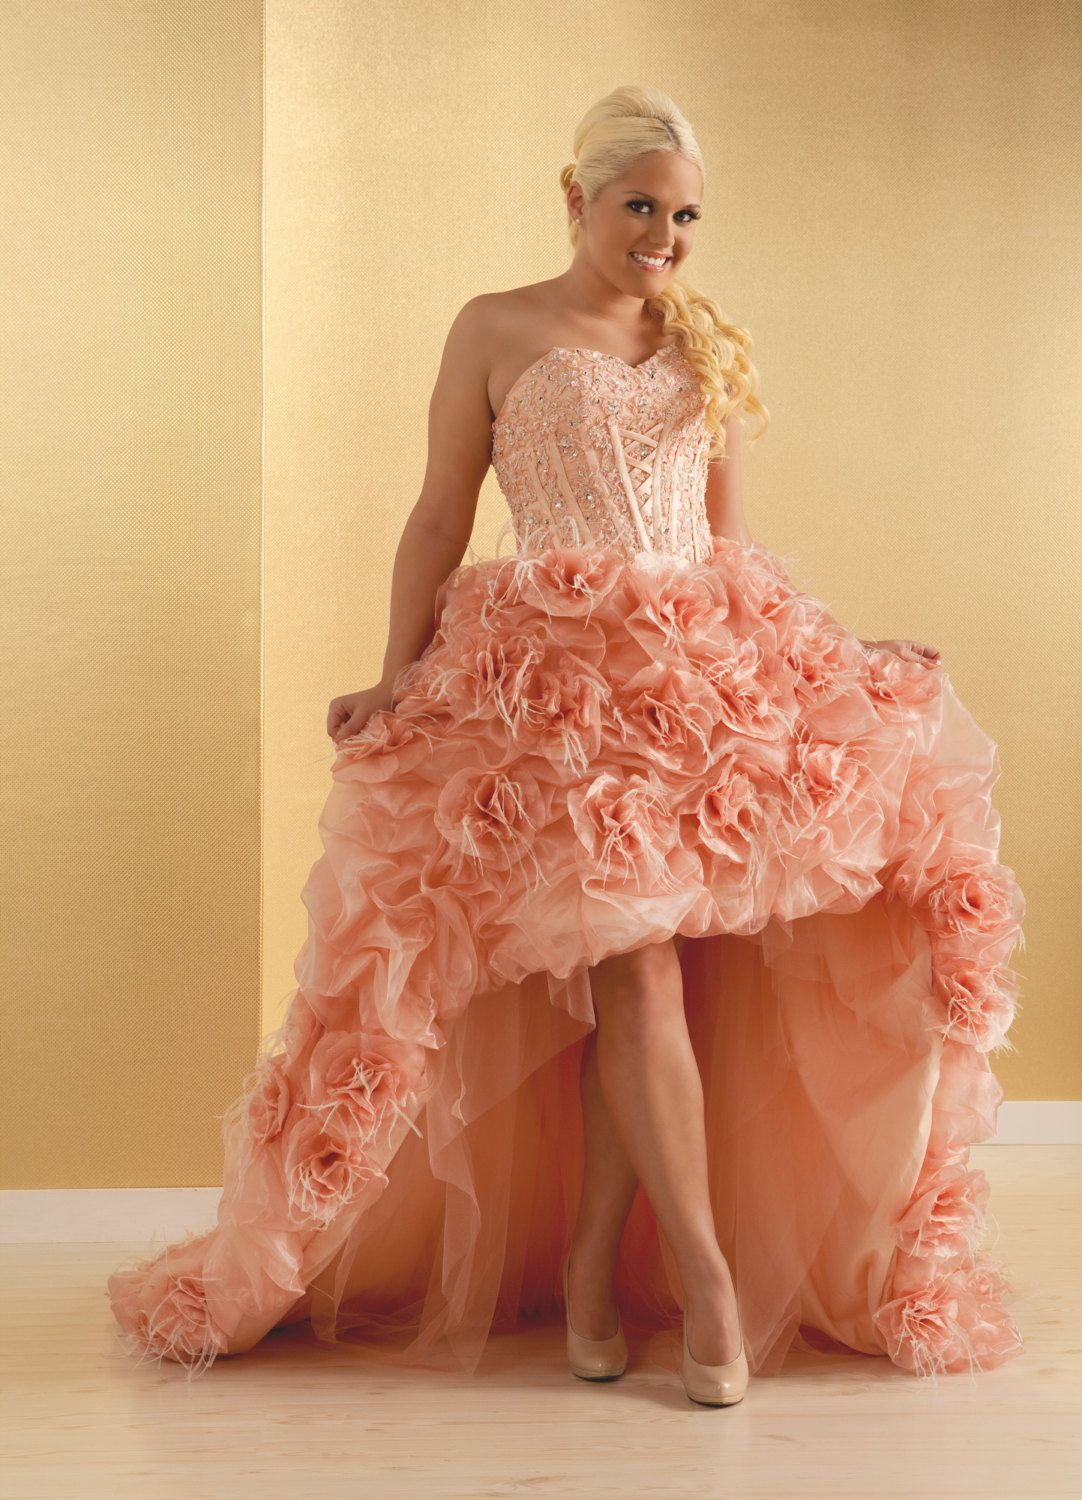 Plus size strapless wedding dress high low, feathers, organza pink ...